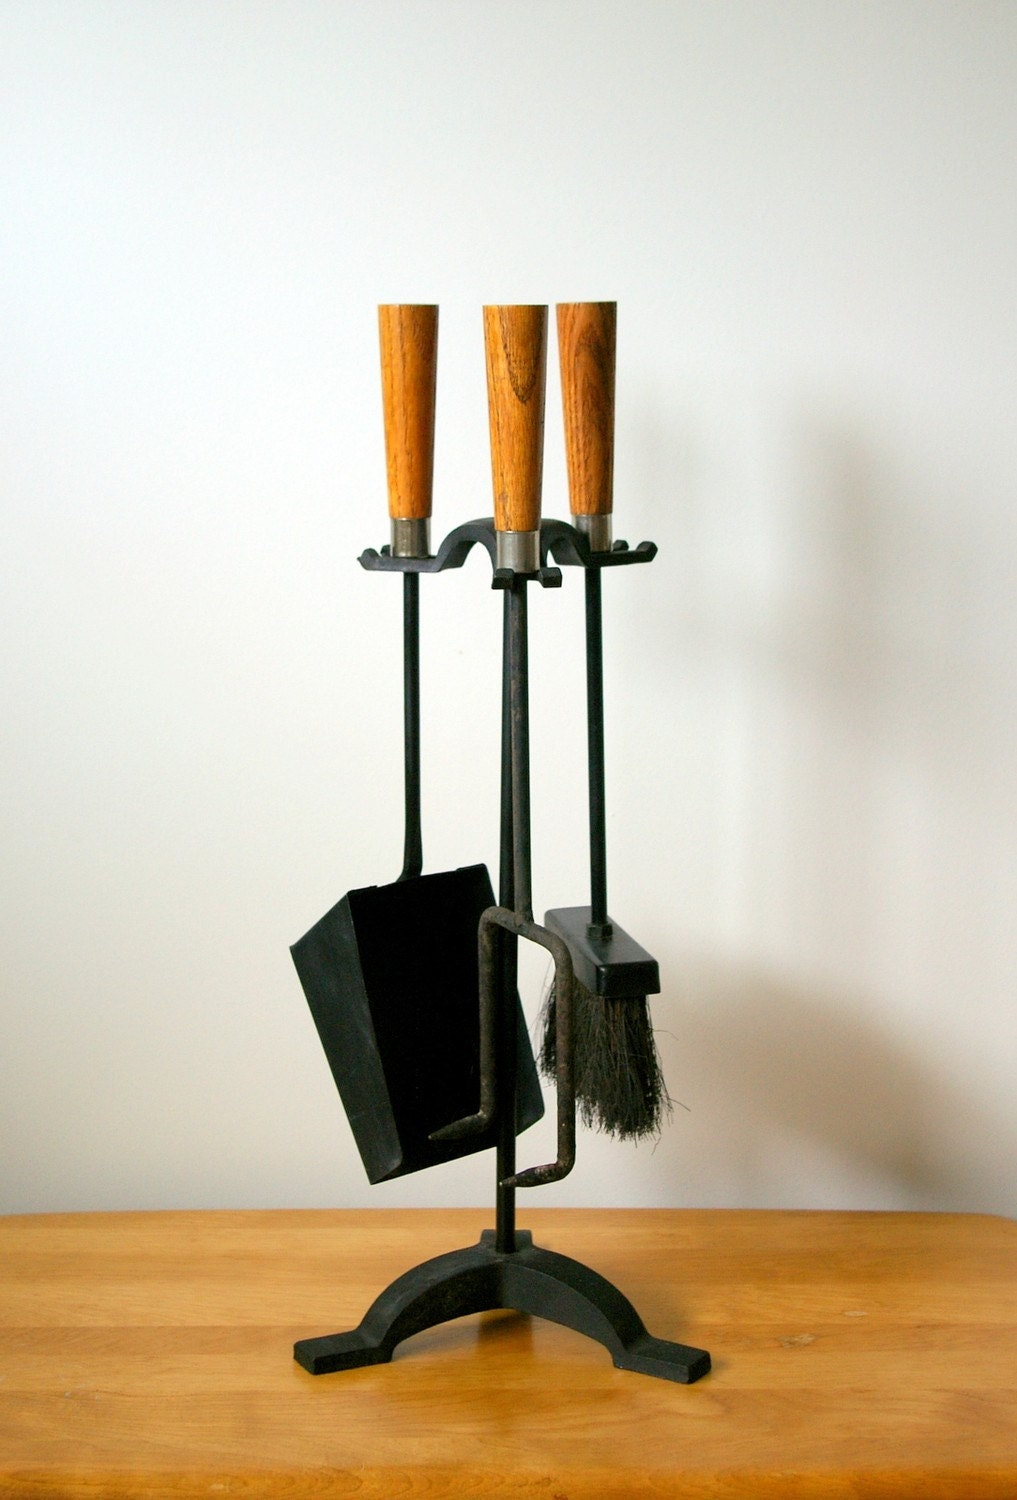 Mid Century Modern Fireplace Tools By Bitofbutter On Etsy